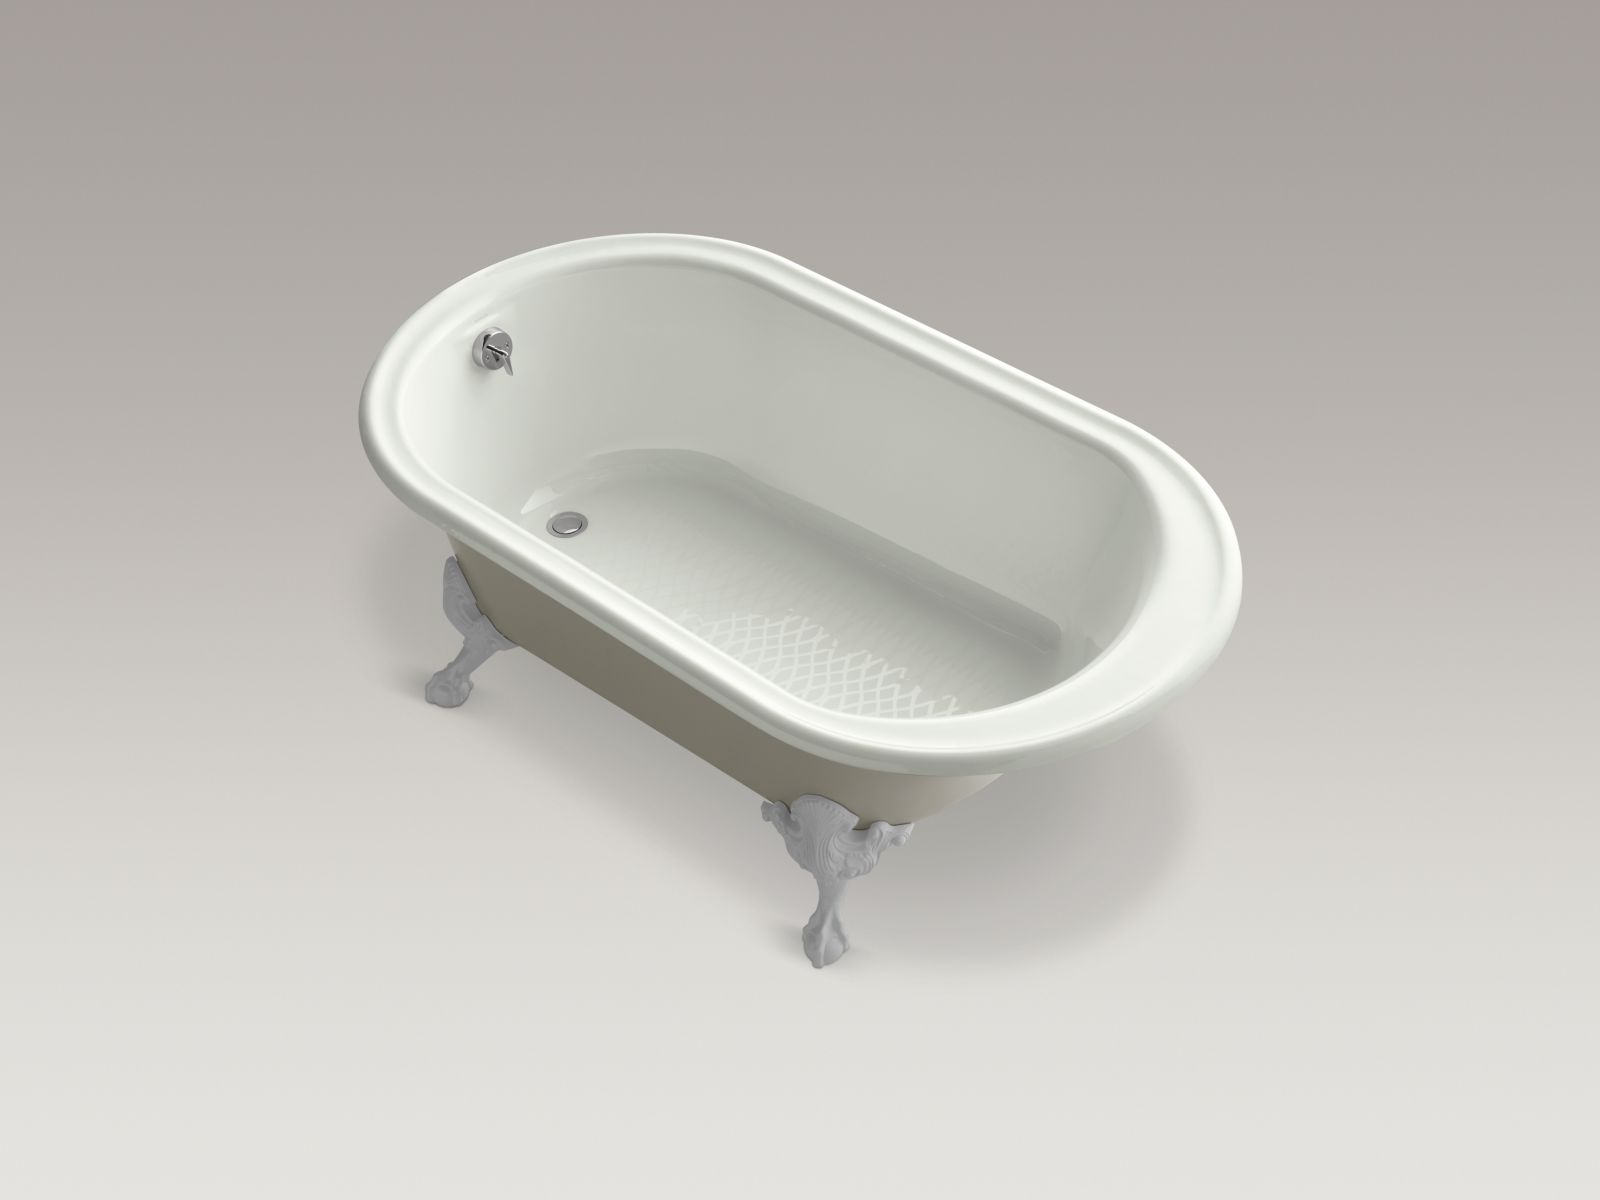 Kohler K-710-S-NY Iron Works Historic Bath Dune